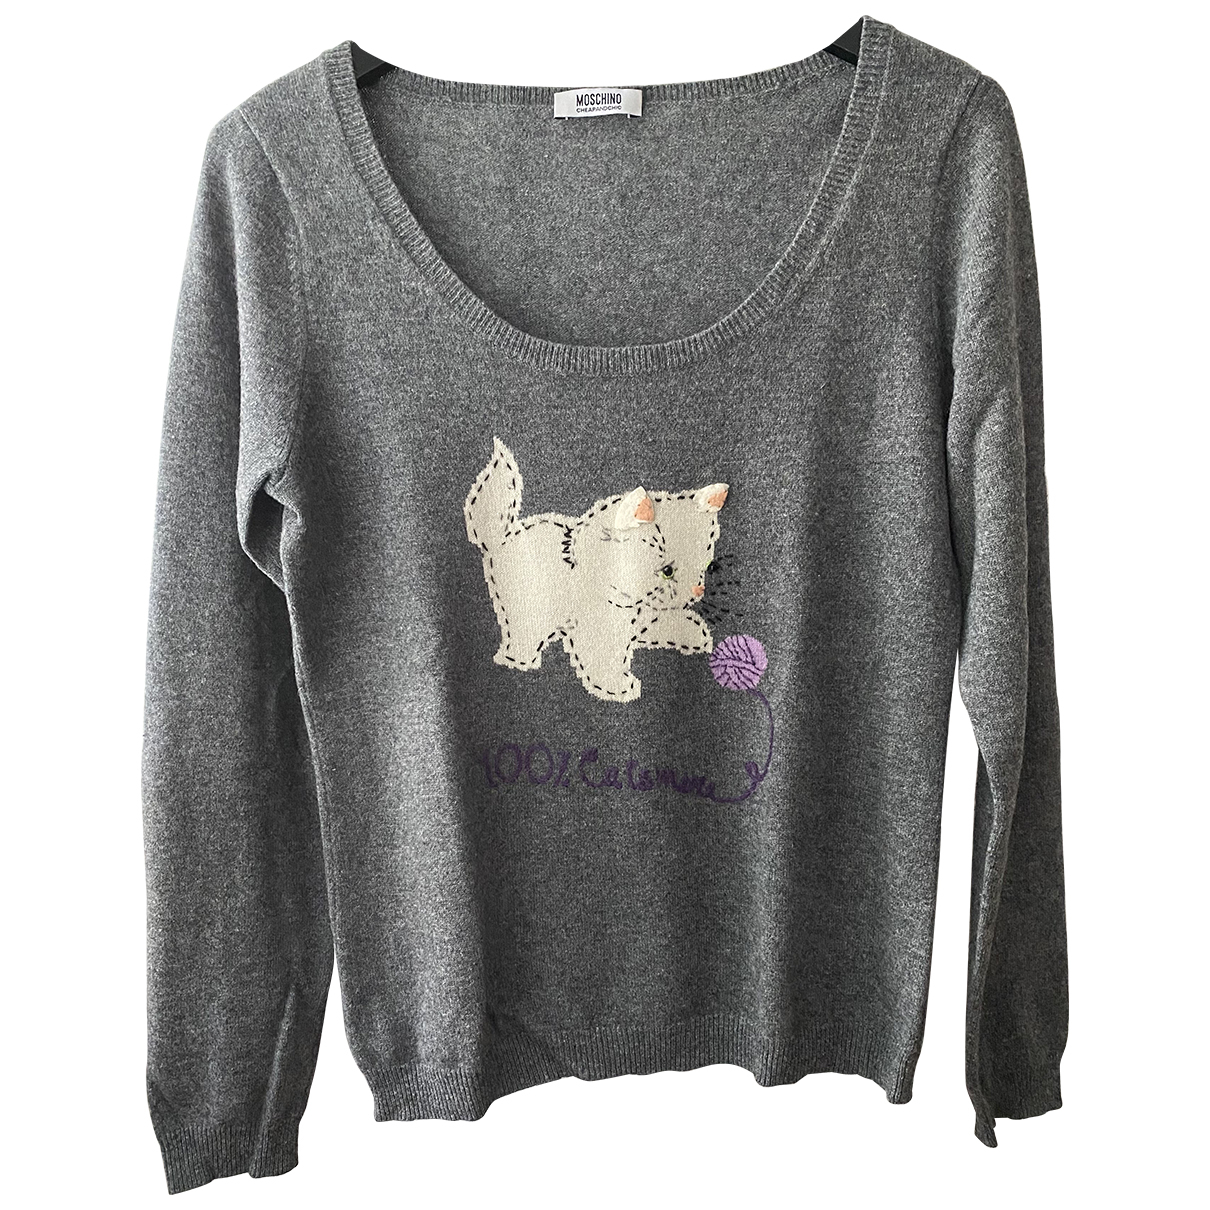 Moschino Cheap And Chic N Grey Cashmere Knitwear for Women 46 IT